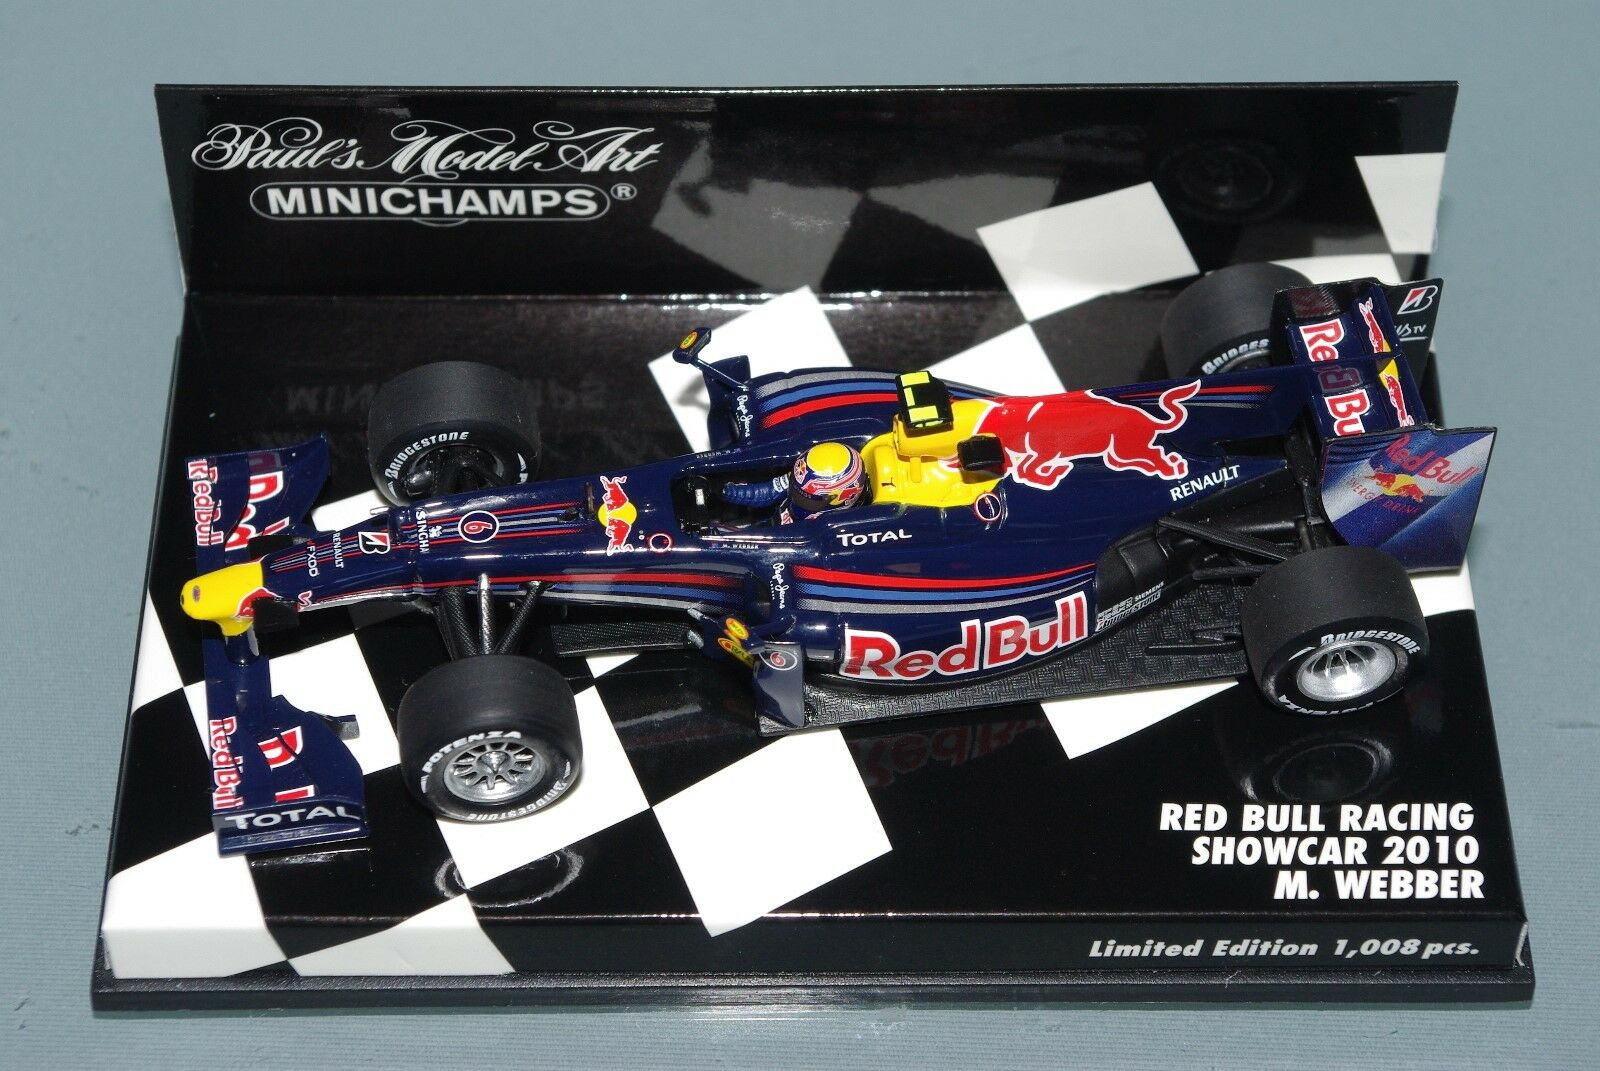 Minichamps F1 1 43 RED BULL RACING RENAULT SHOWCAR 2010 MARK WEBBER